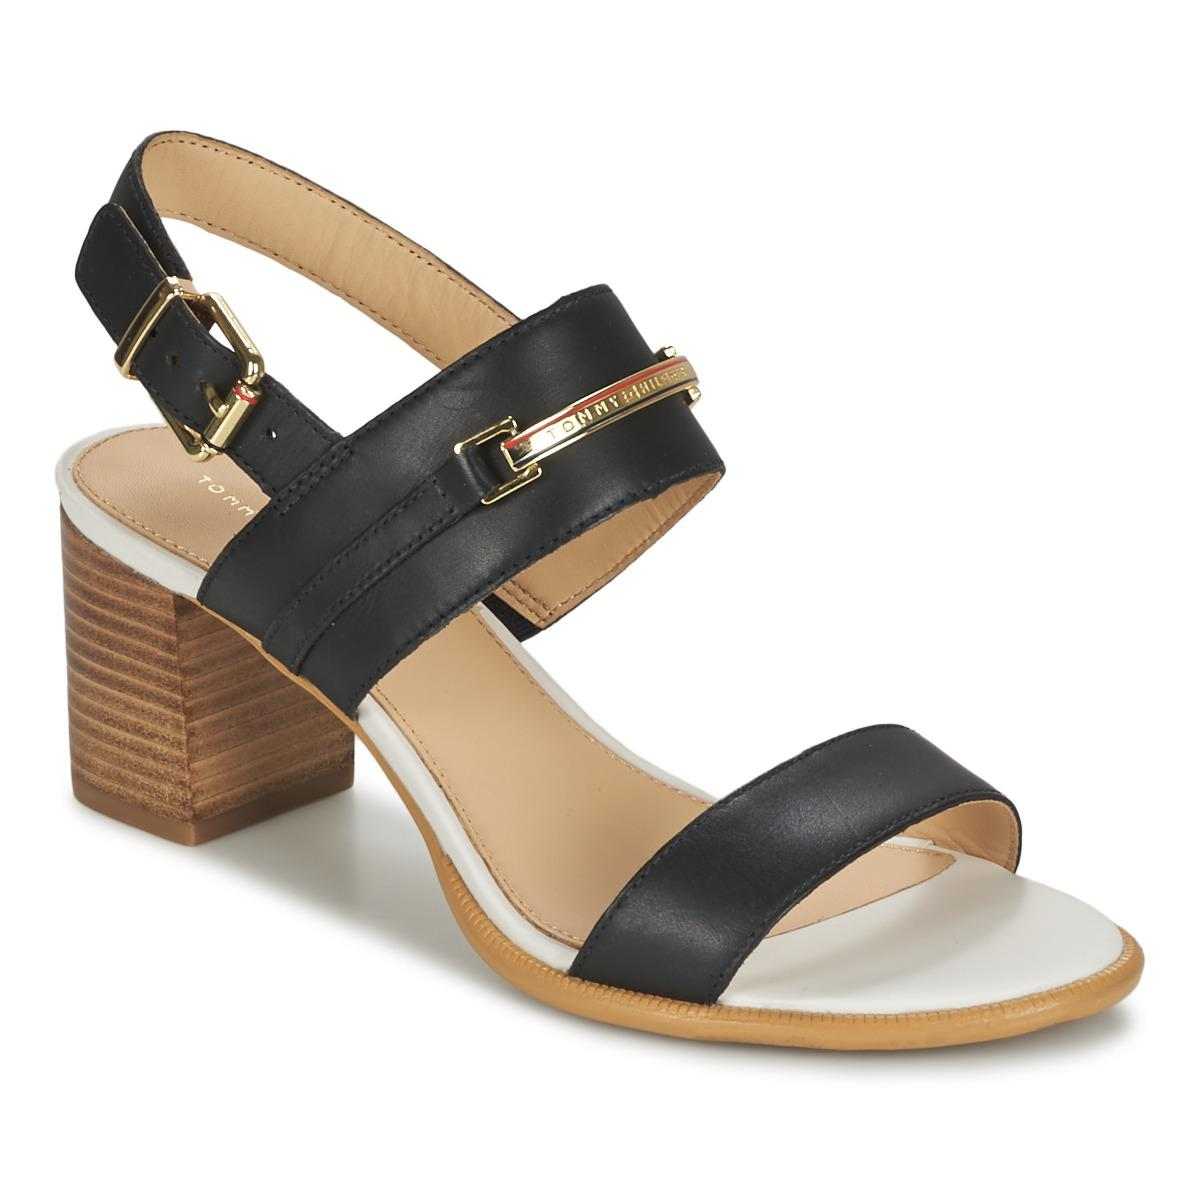 818af7a21228 Tommy Hilfiger Josephine 2a Sandals in Black - Lyst